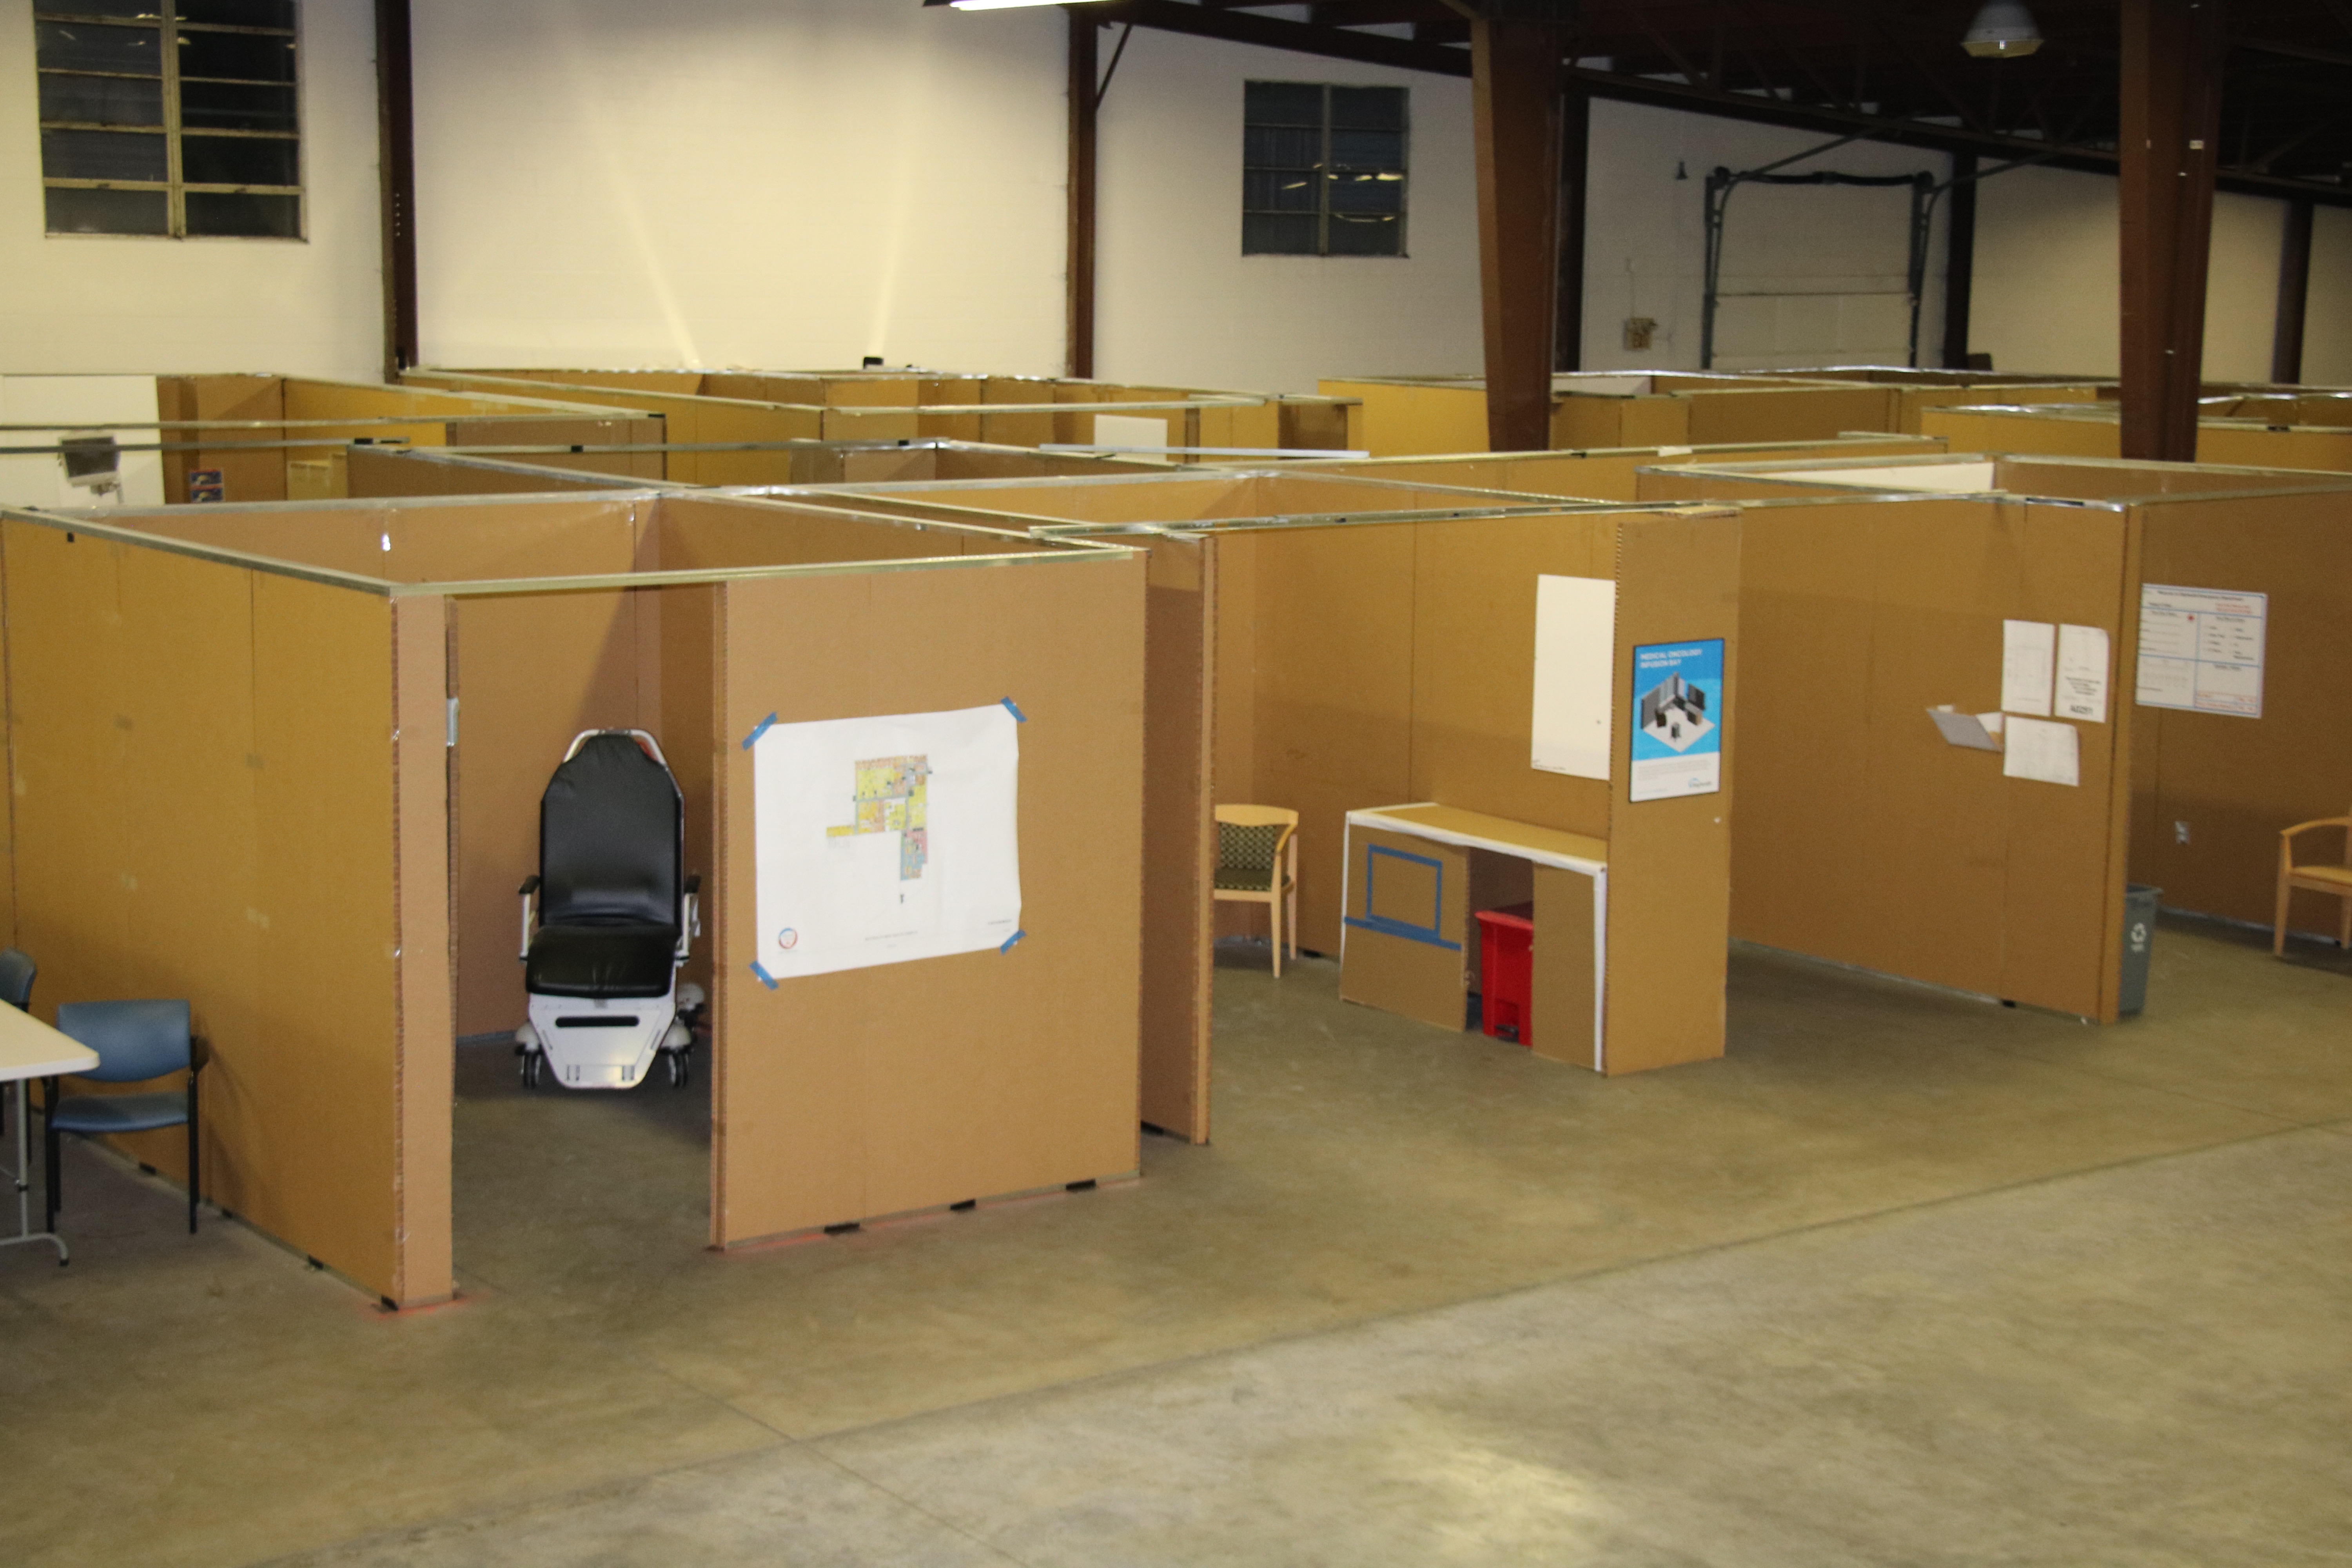 Warehouse with cardboard mock rooms